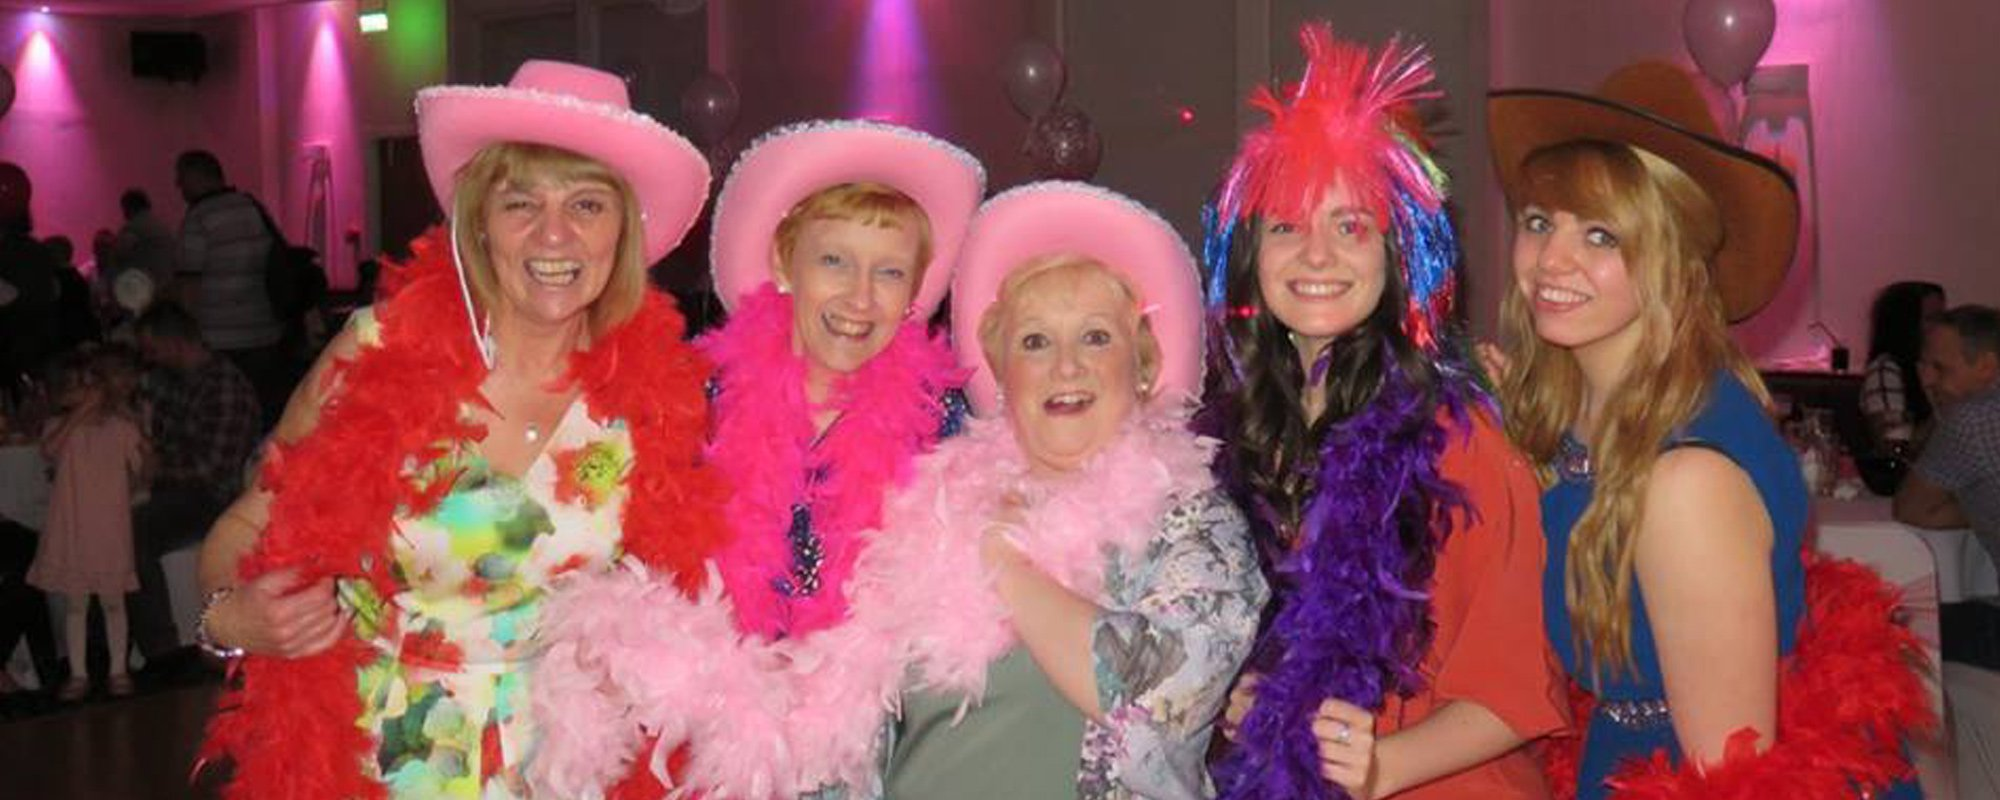 Group of women wearing party props and enjoying